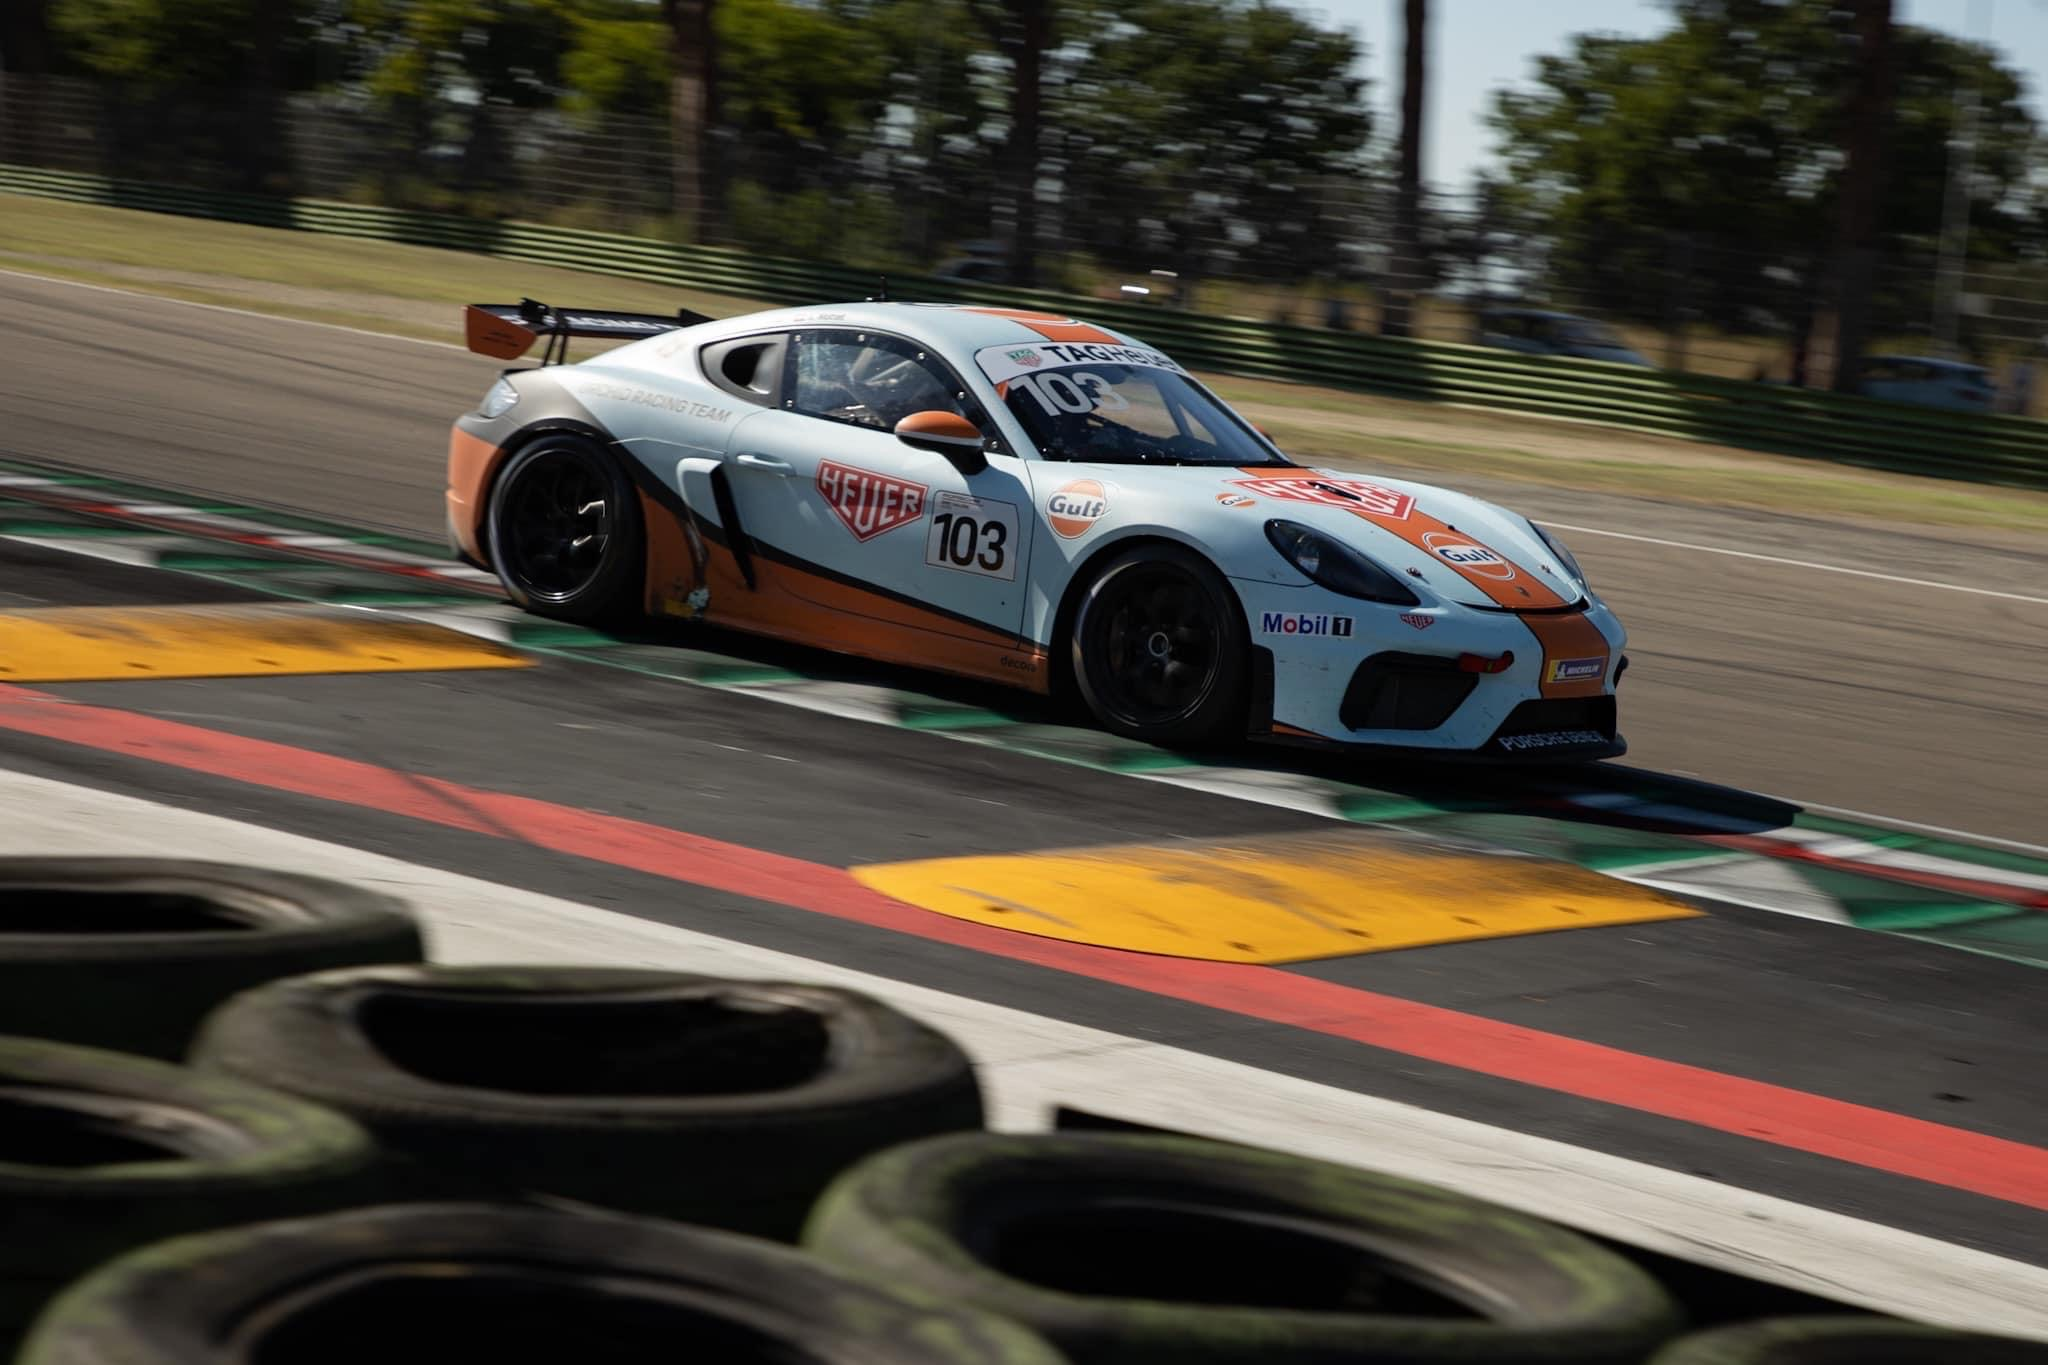 Coaching compétition Porsche Cayman 718 GT4 MR